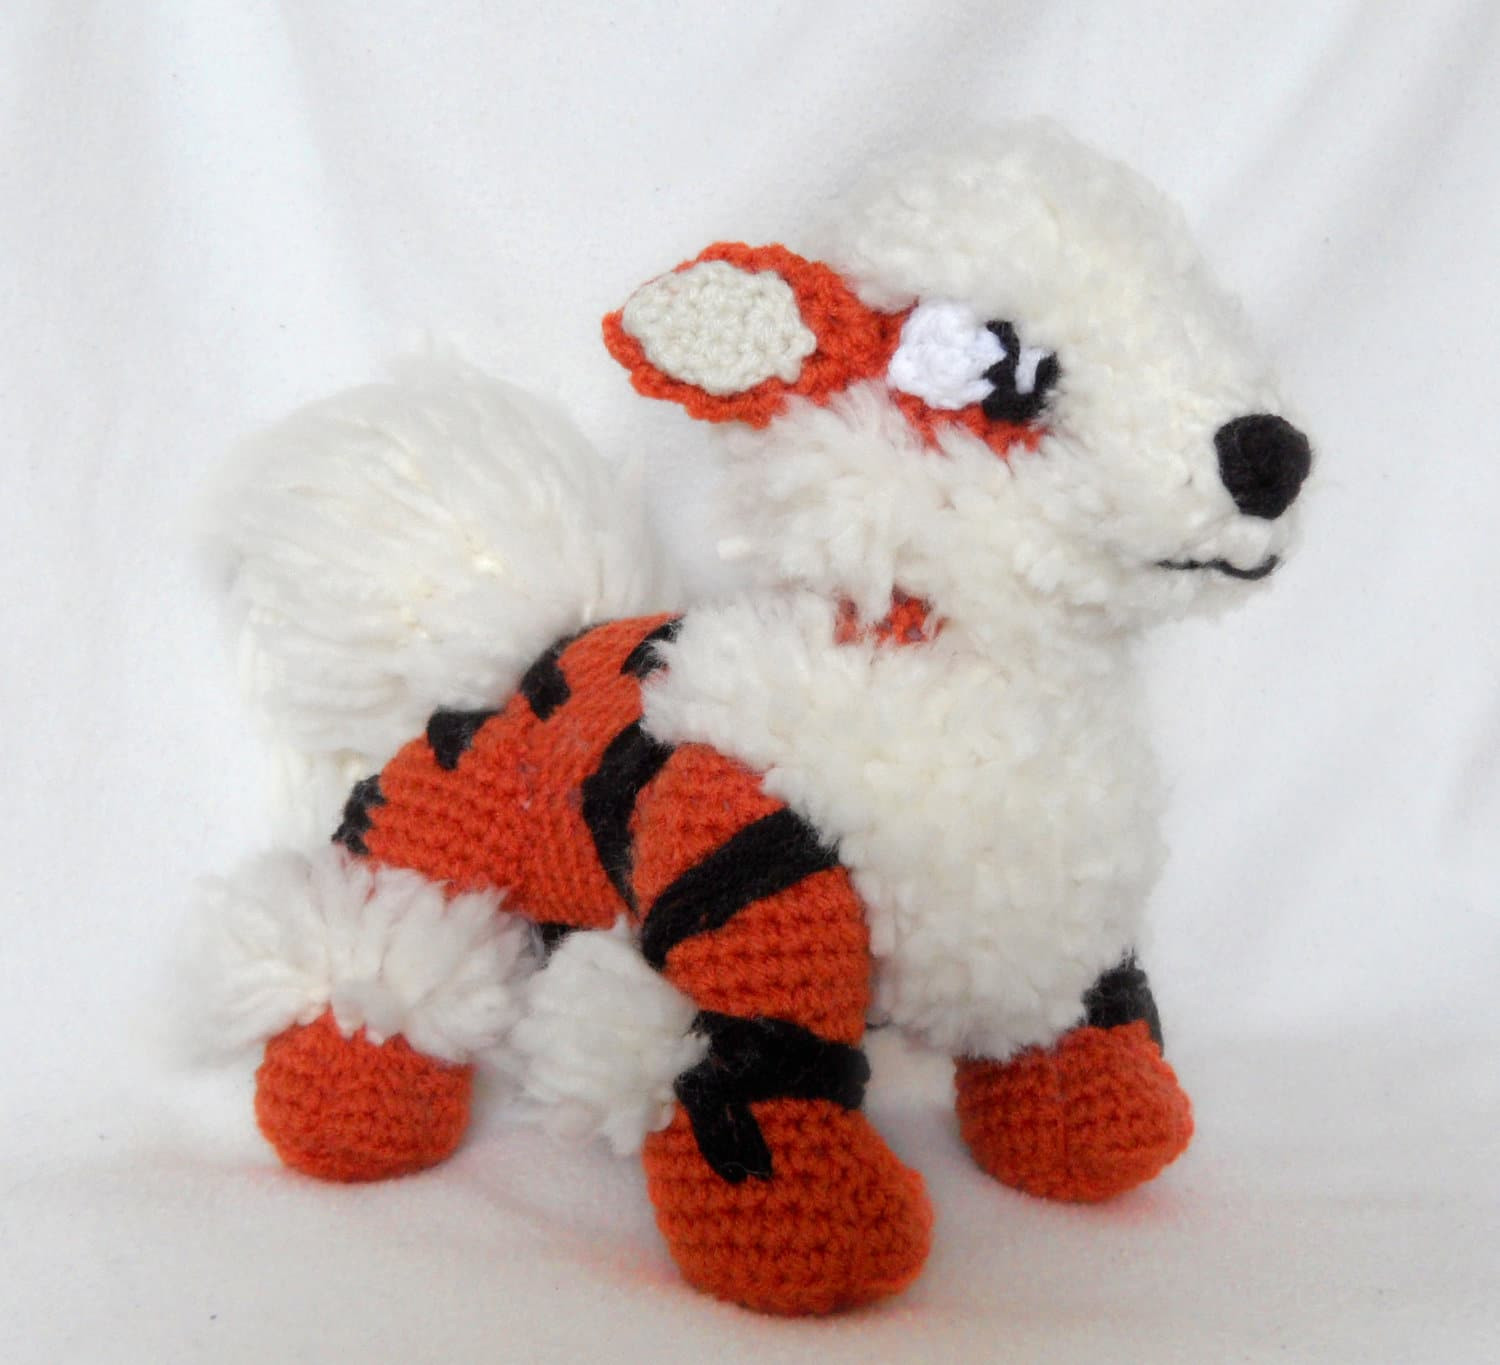 Best Of Crocheted Plush Pokémon Characters with Insane Detail Crochet toys Of Amazing 46 Models Crochet toys